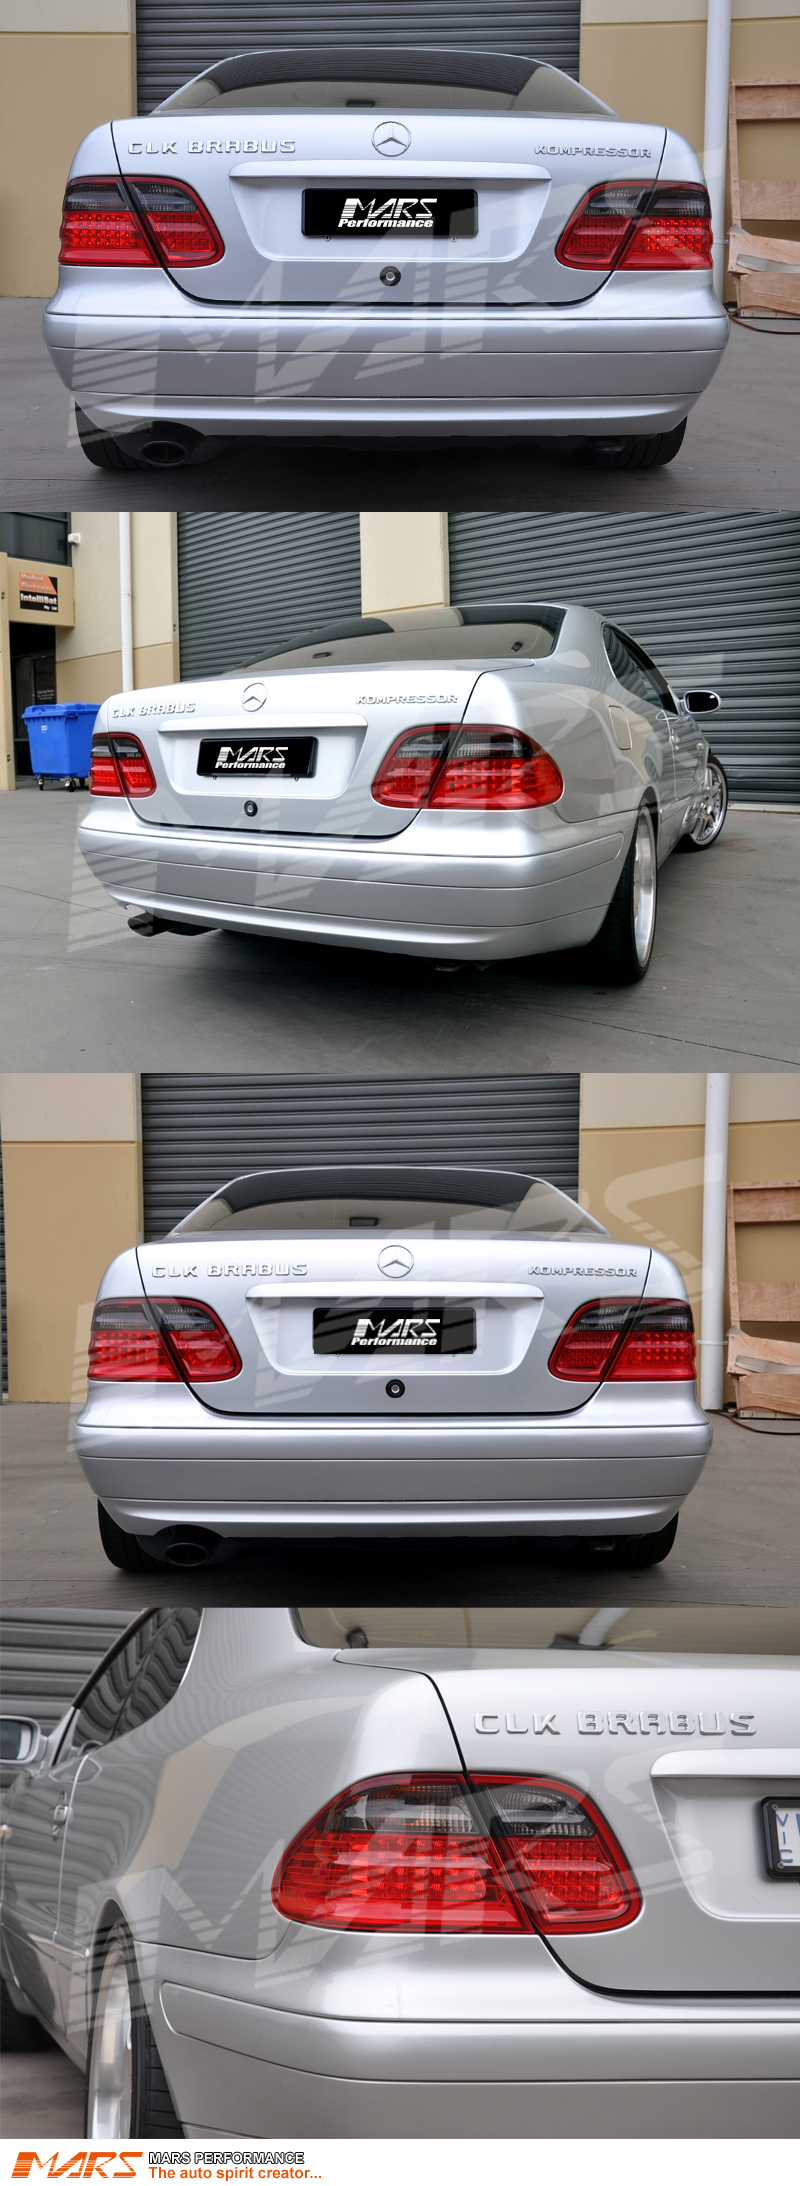 Mercedes Tail Red C208Mars Lights Smoked Led Clk Benz W208 For roeCxdB